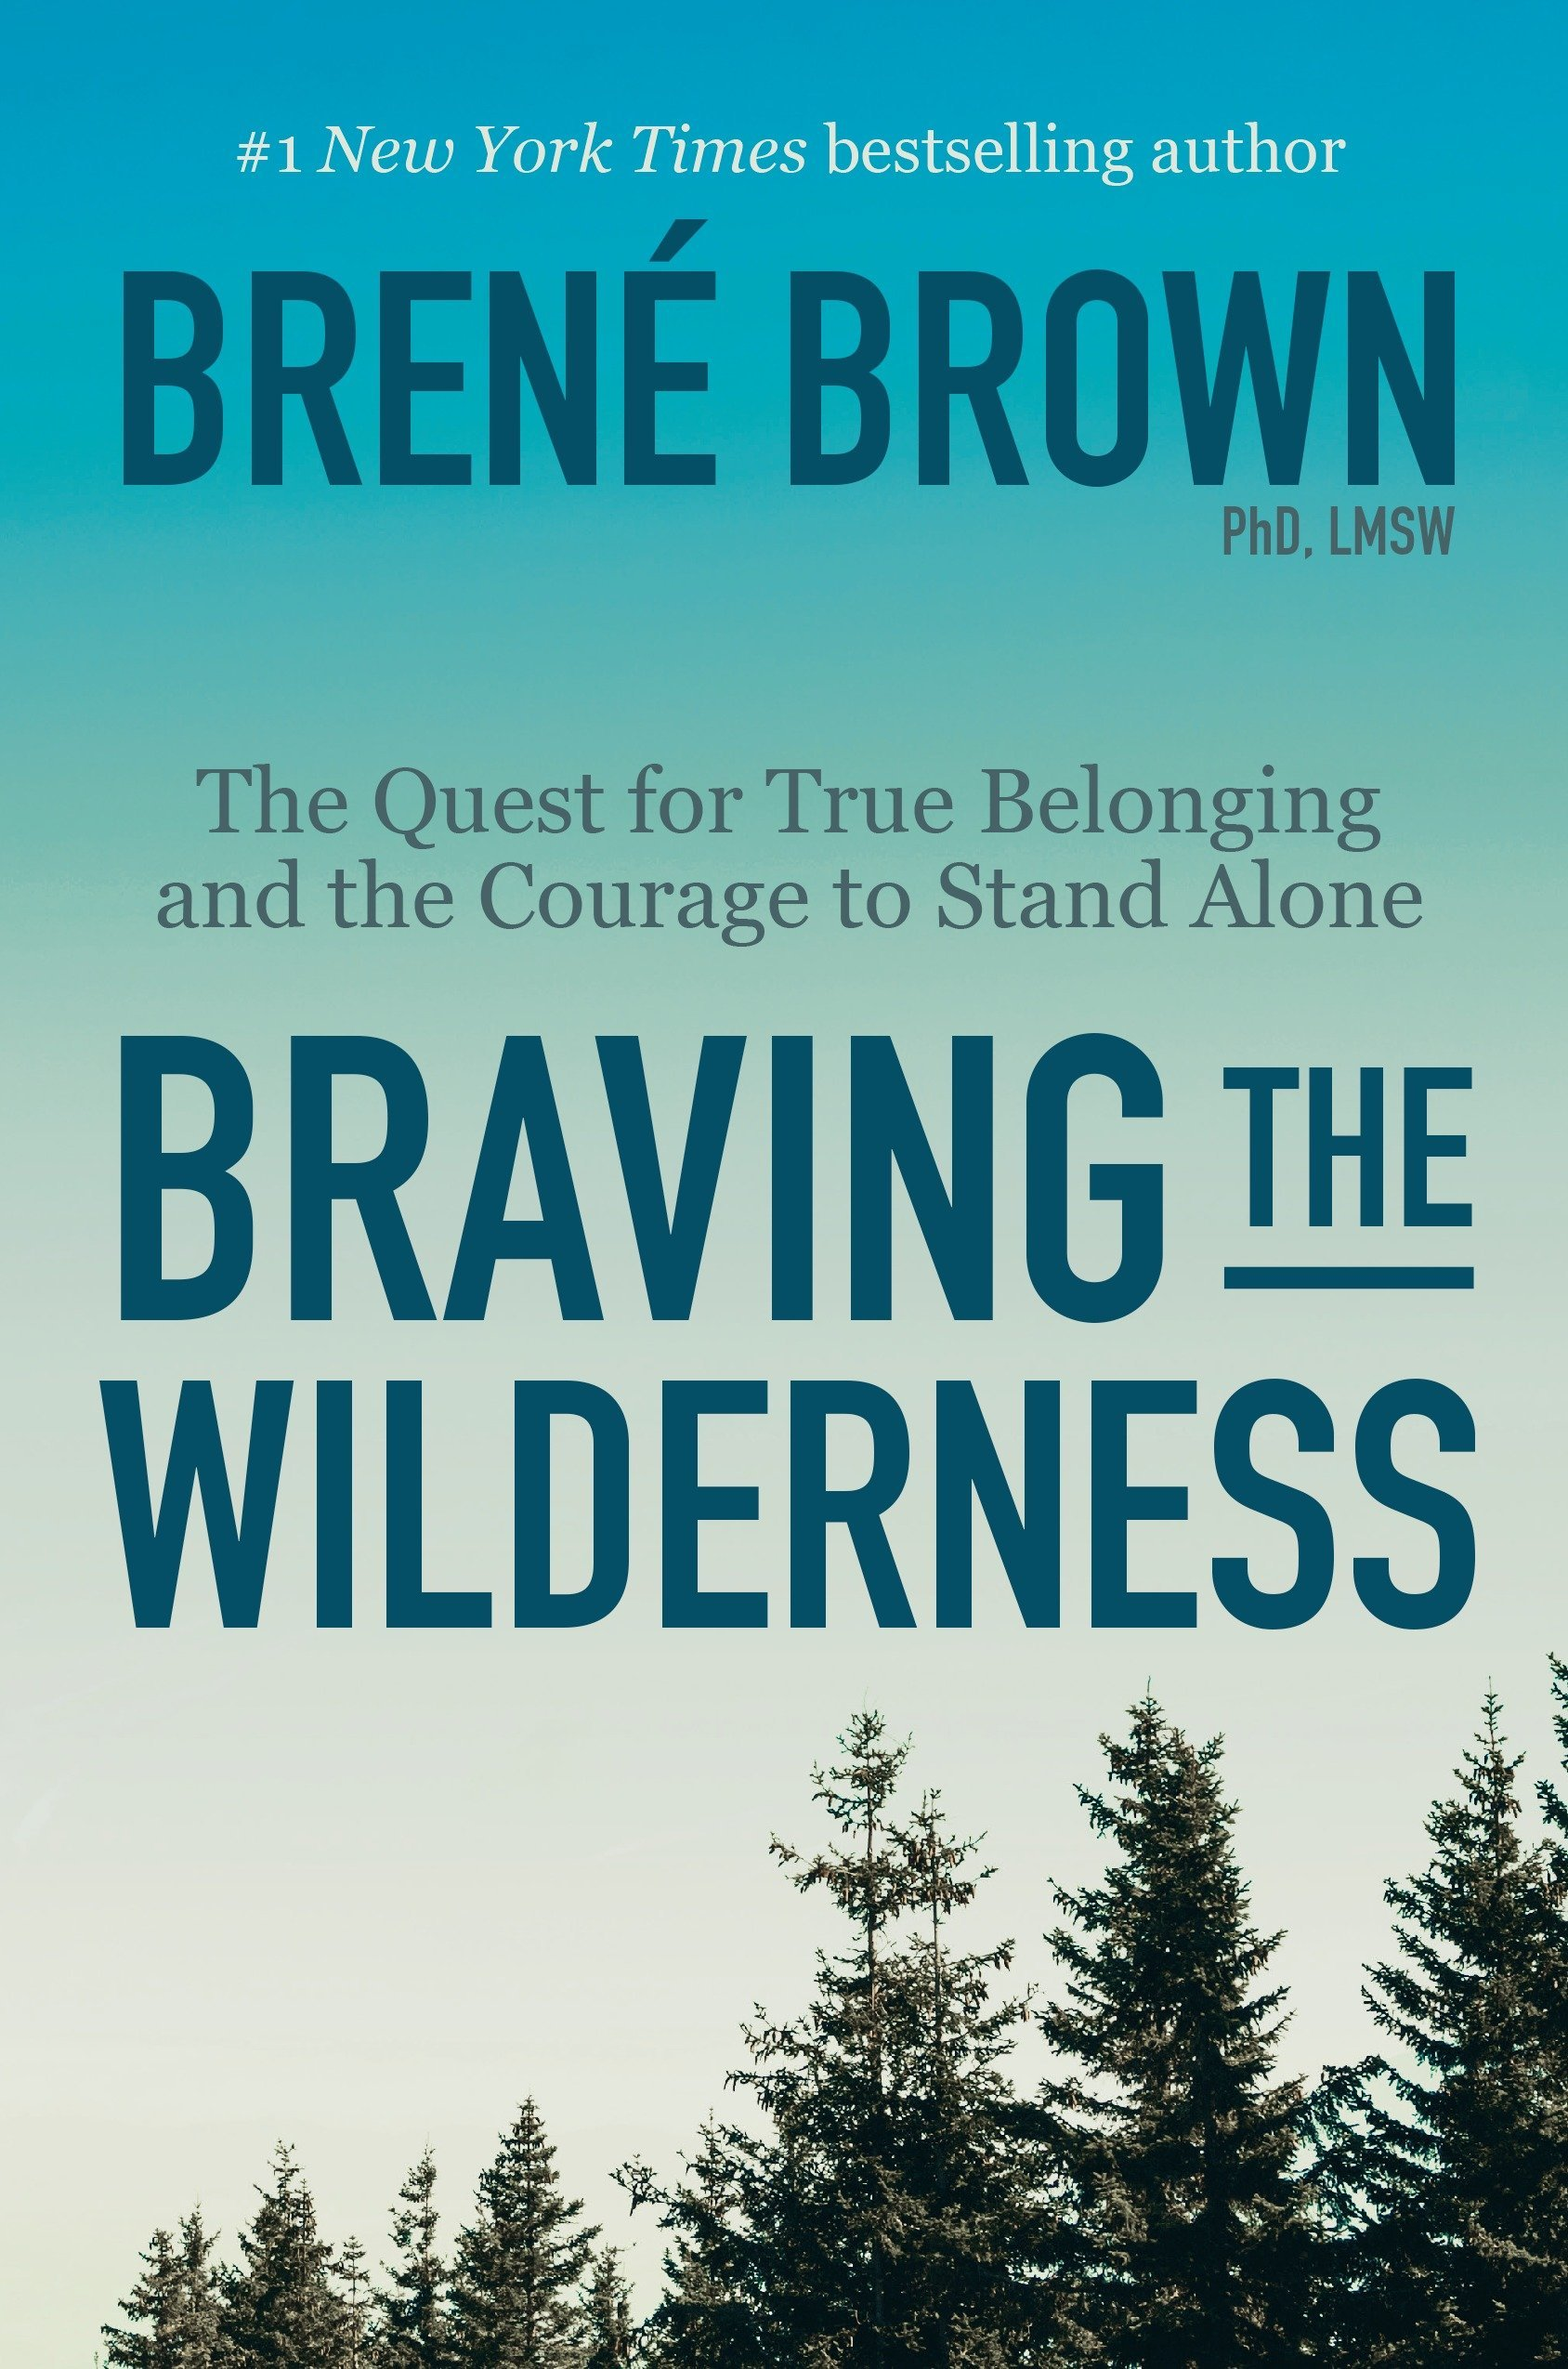 Braving The Wilderness - By Brene Brown